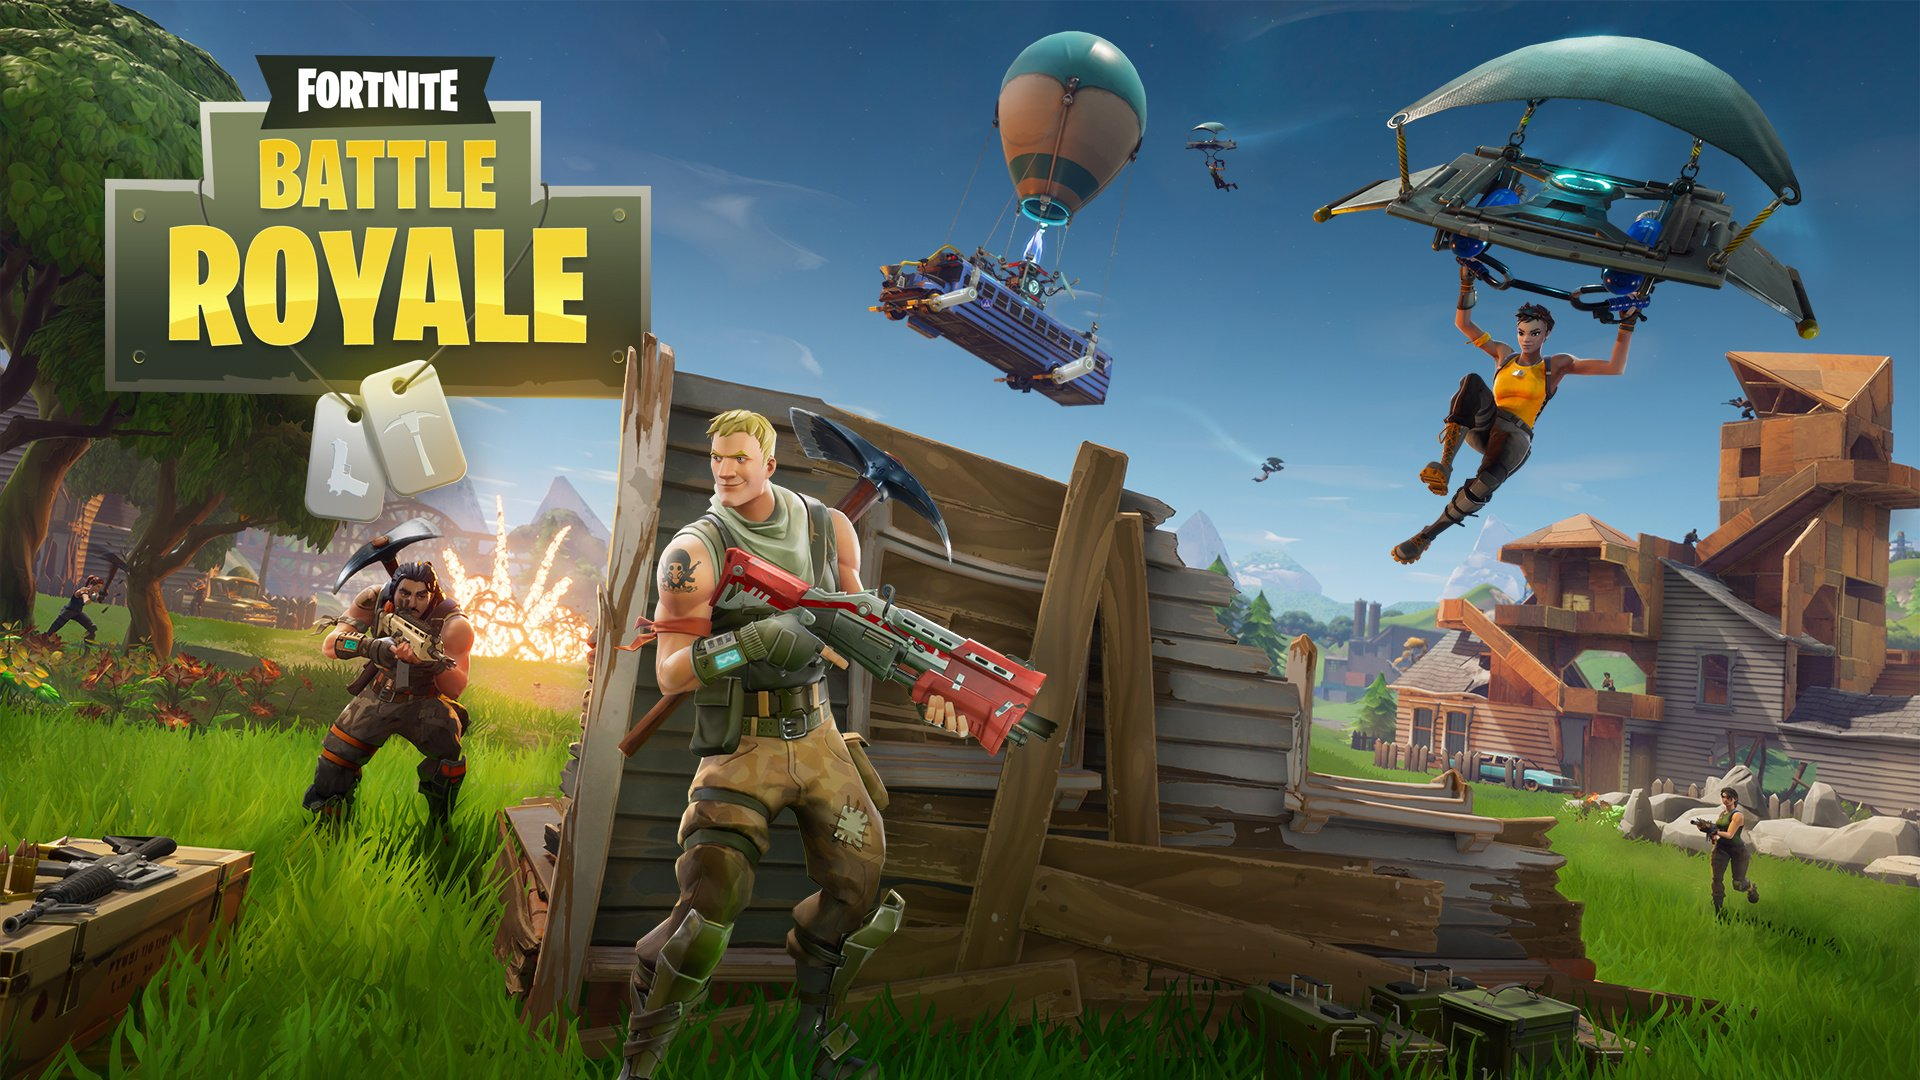 Fortnite: Battle Royale PS4 - How to Play for Free - Guide